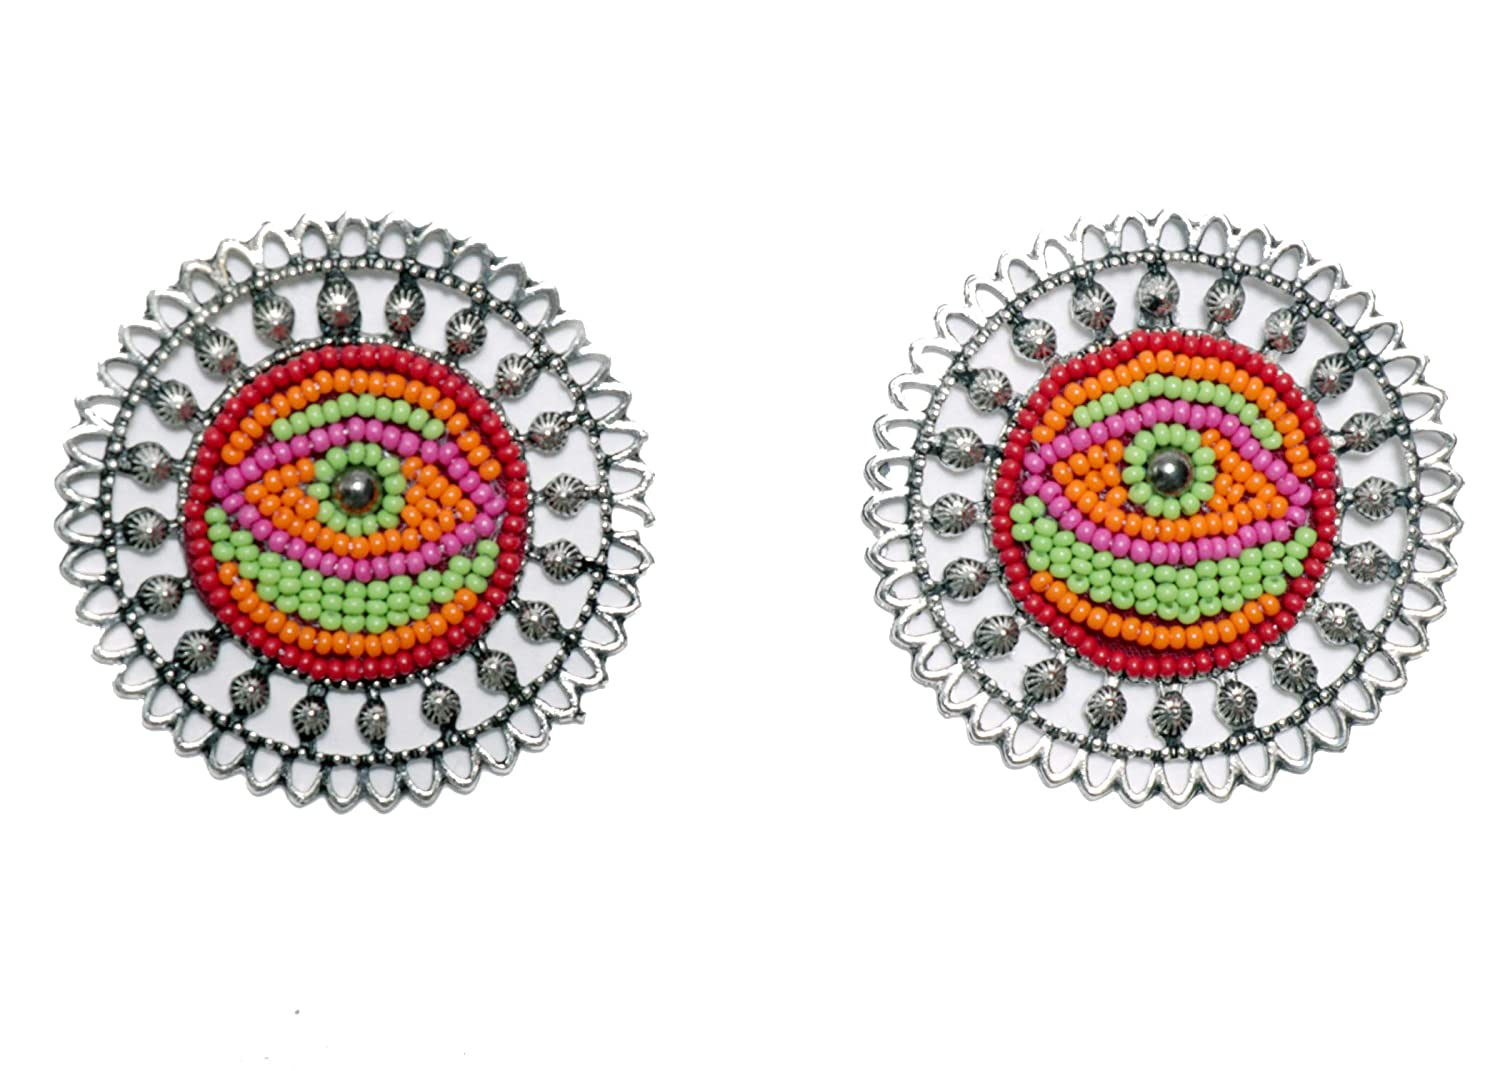 eye pattern Round Earrings with embedded beads Indian Traditional Jewellery for Stylish Women and Girls by SP Jewels